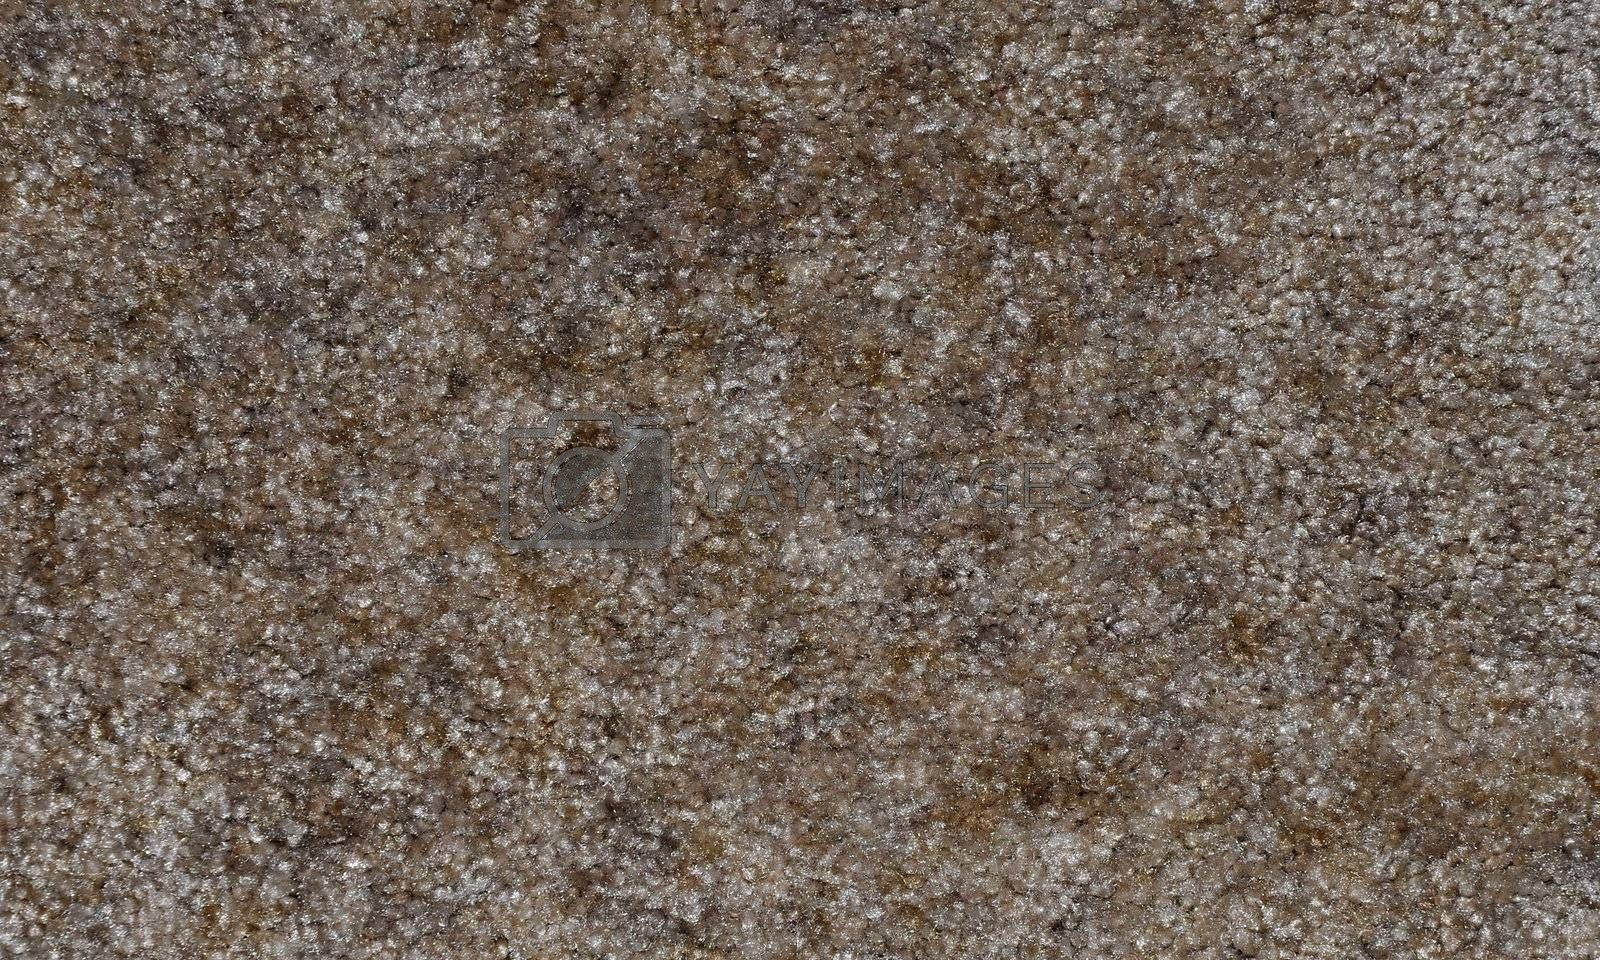 Royalty free image of brown carpet abstract by cfarmer